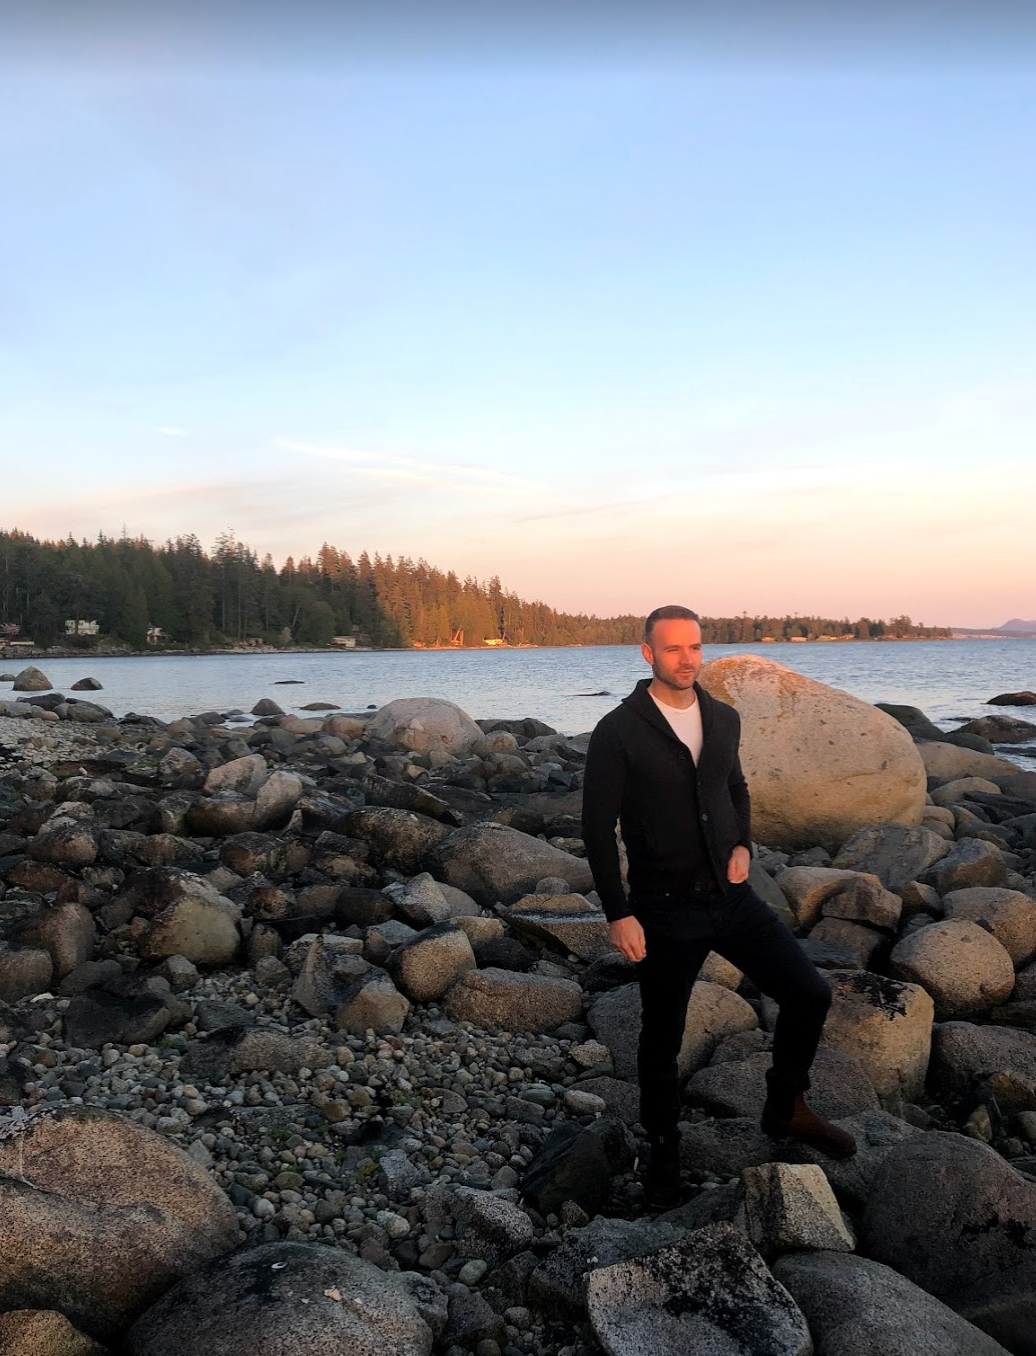 Jordan taking in the sunset of Powell River, BC